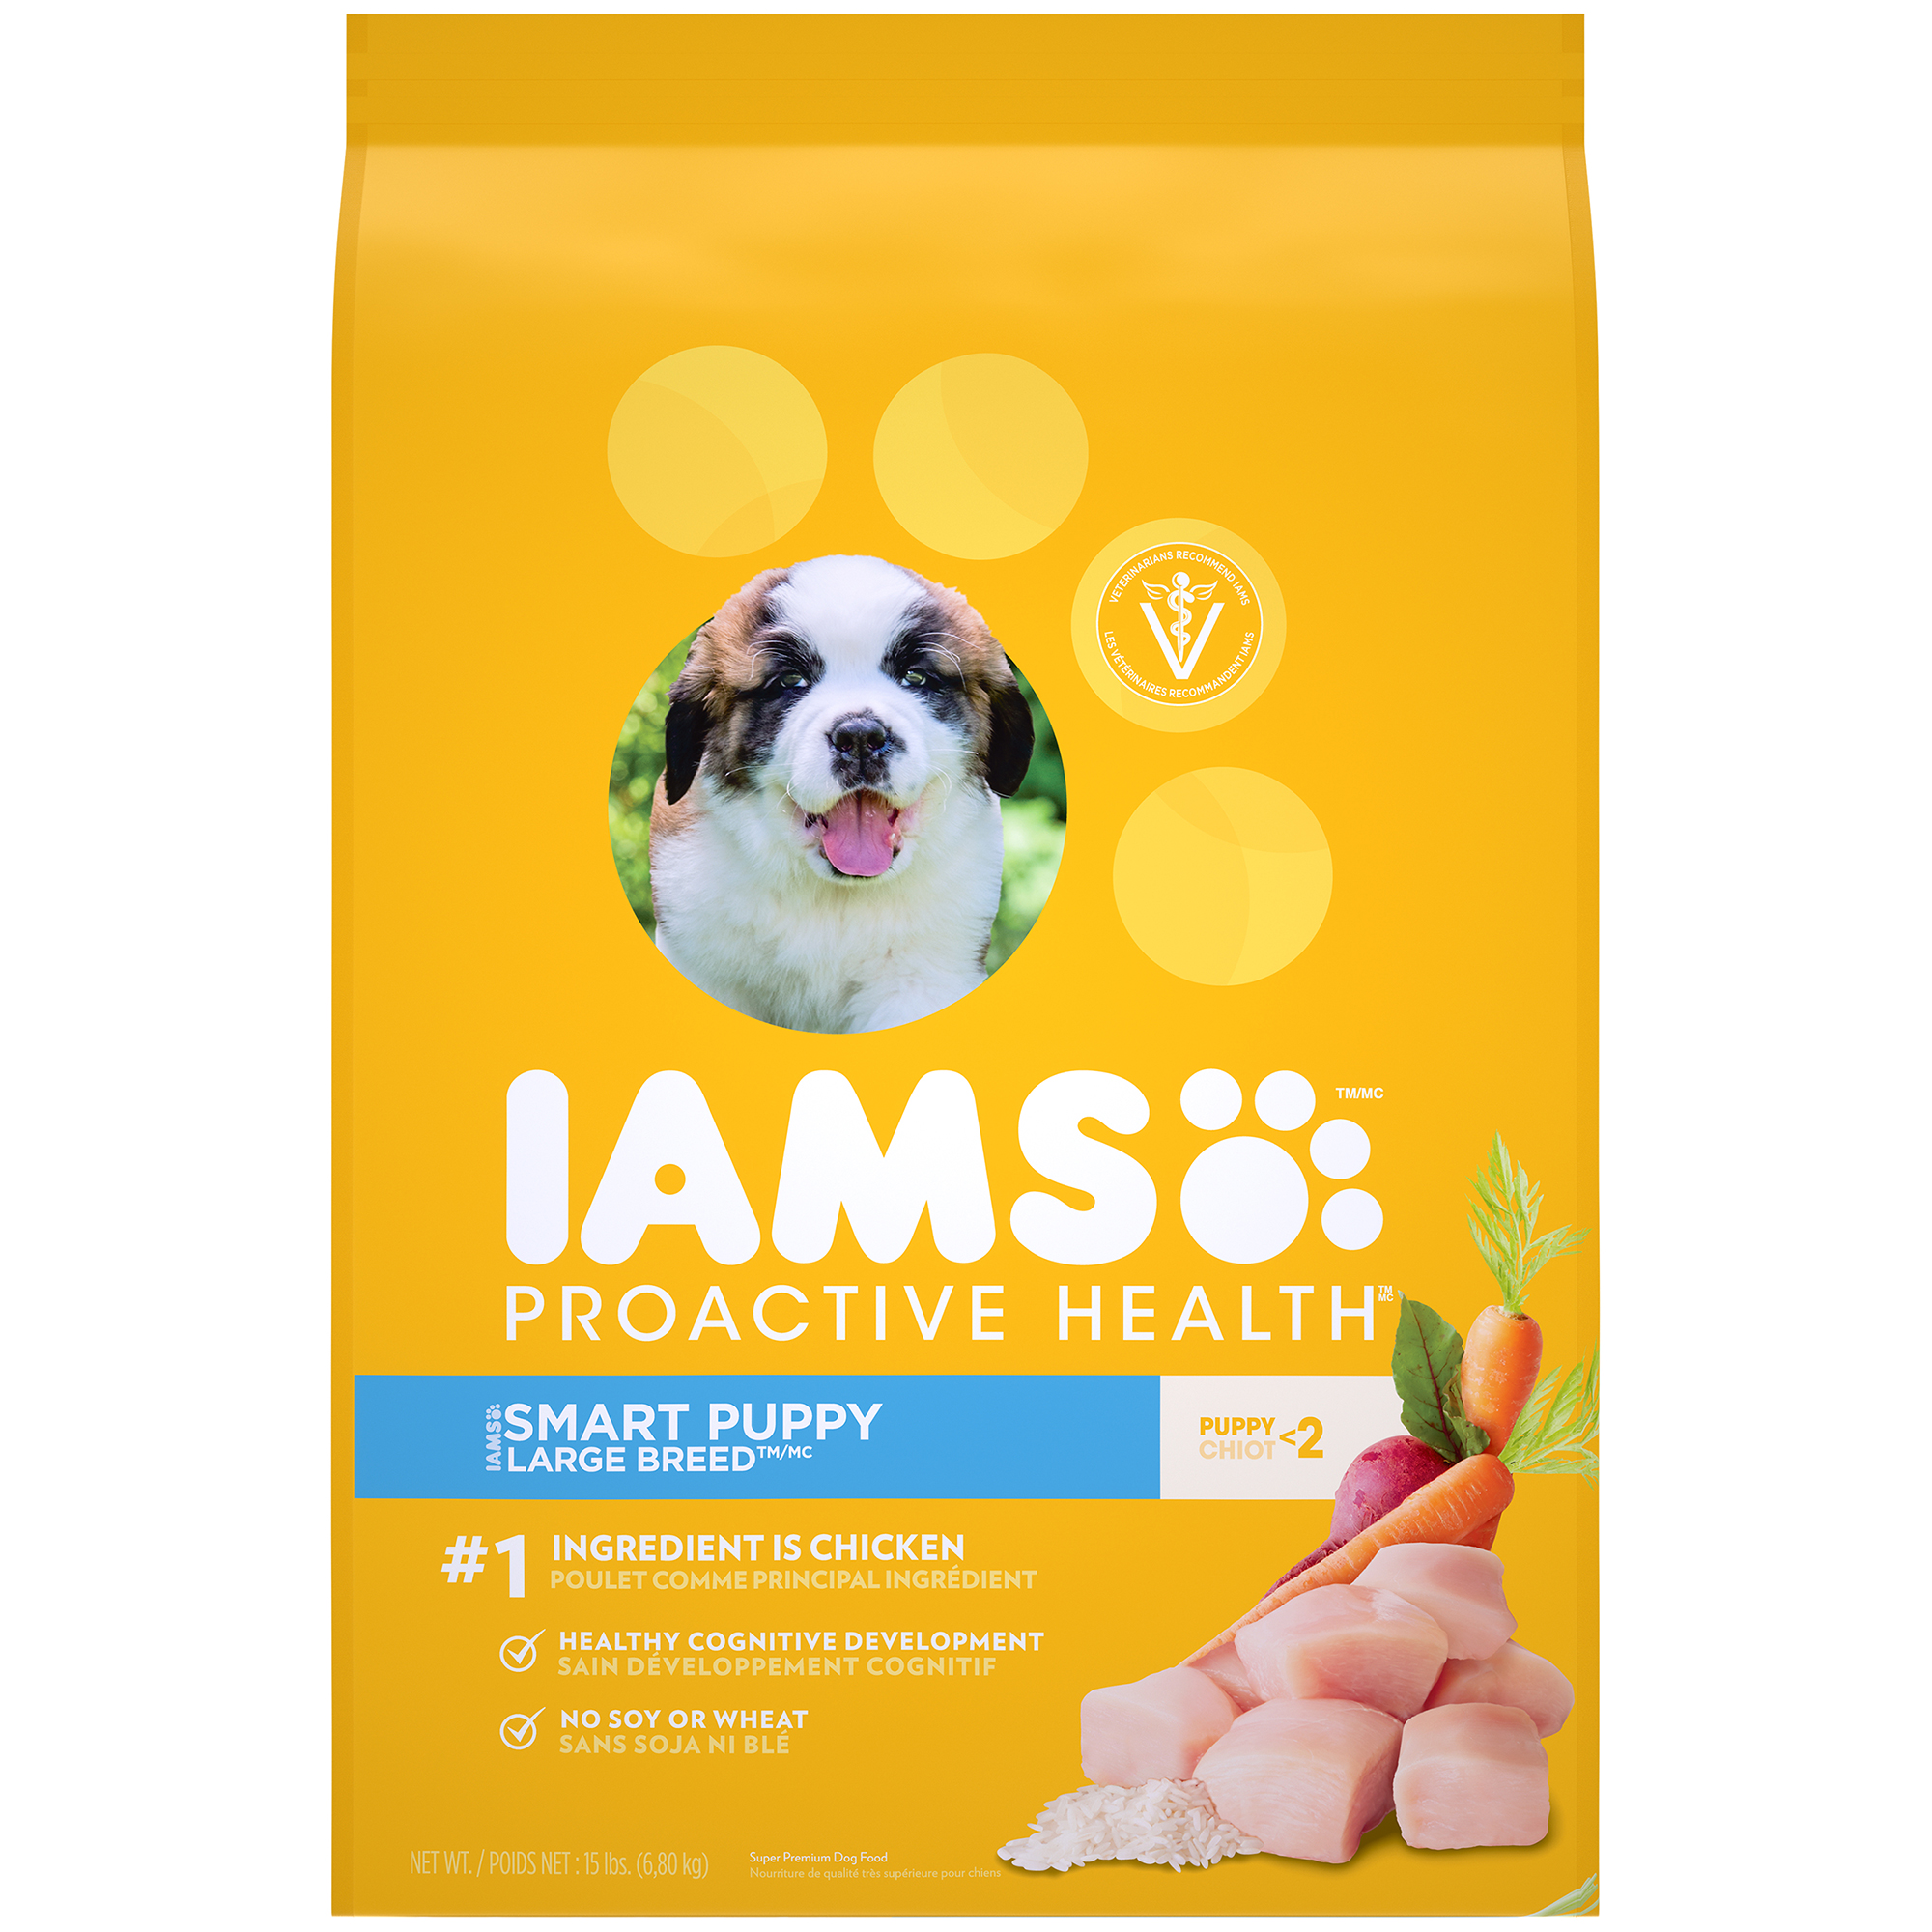 IAMS PROACTIVE HEALTH Smart Puppy Large Breed Dry Puppy Food 15 Pounds by Mars Petcare